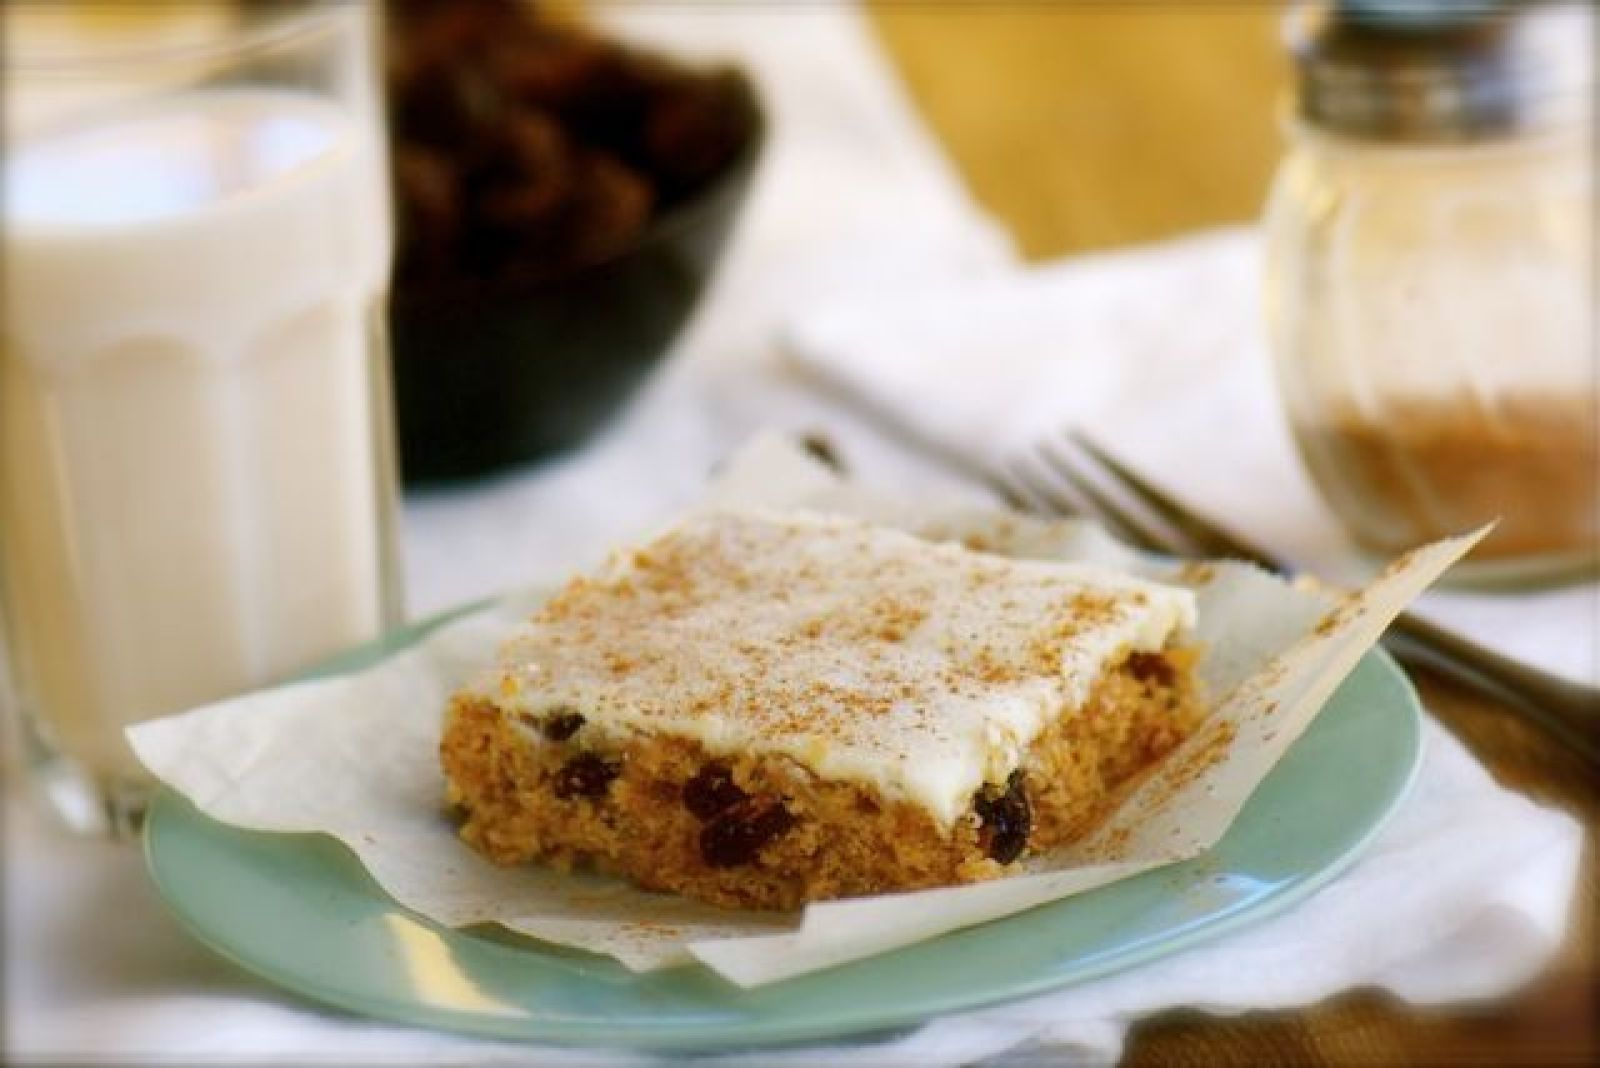 Recipe: Cinnamon Raisin Bars